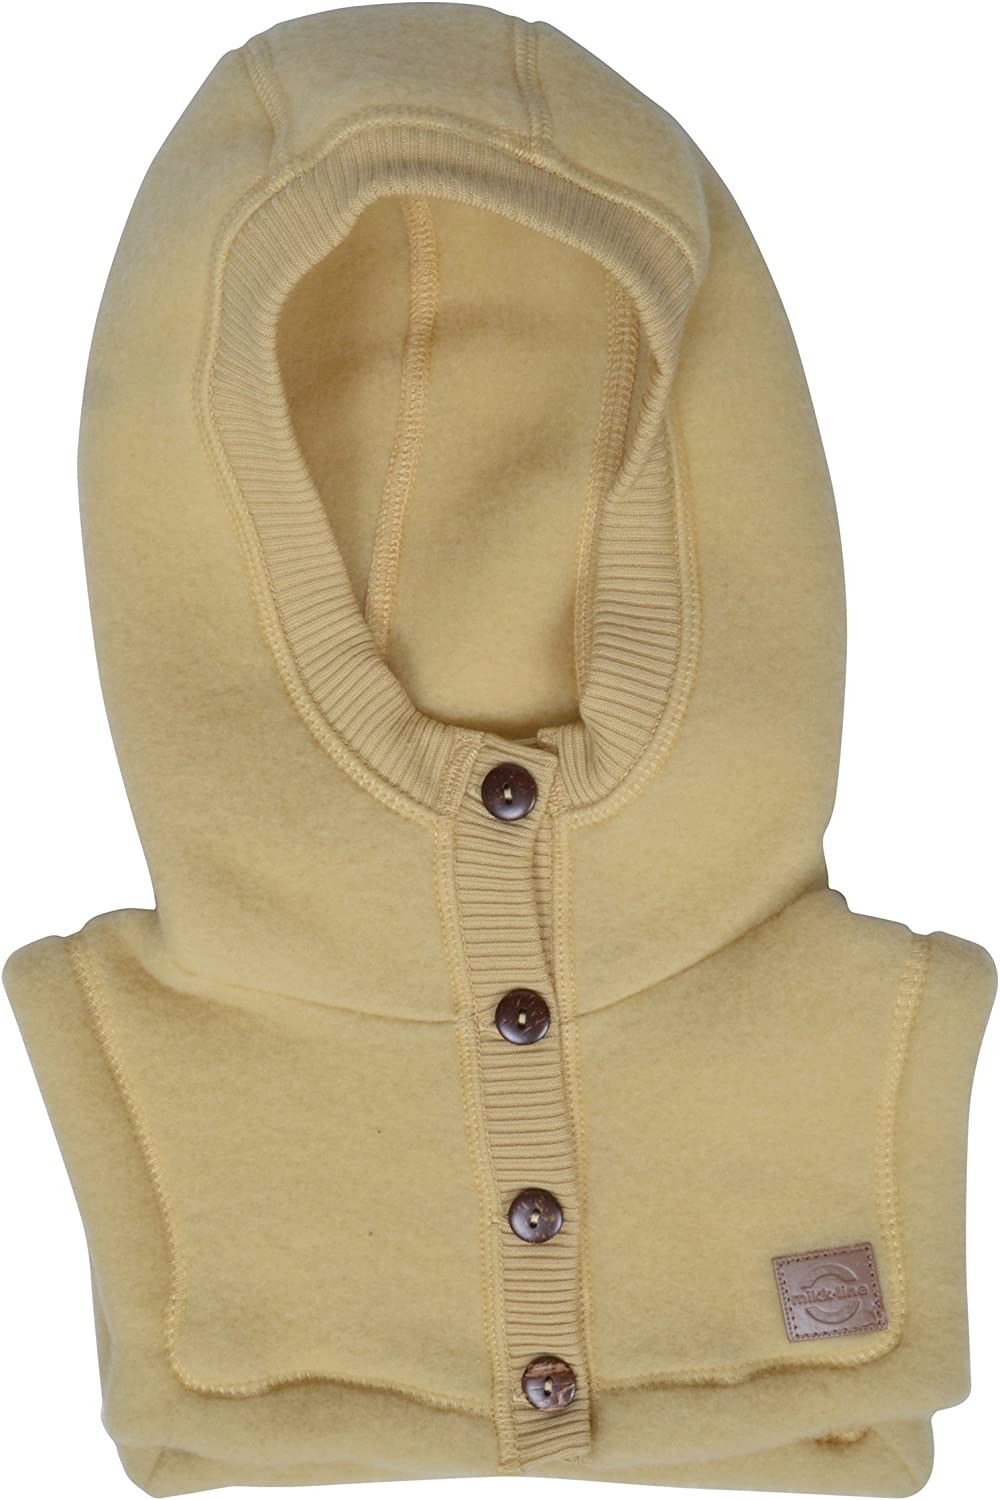 MIKK-Line - Melton Girls' Wool with Closure Hat Full-Neck Large-scale sale Animer and price revision